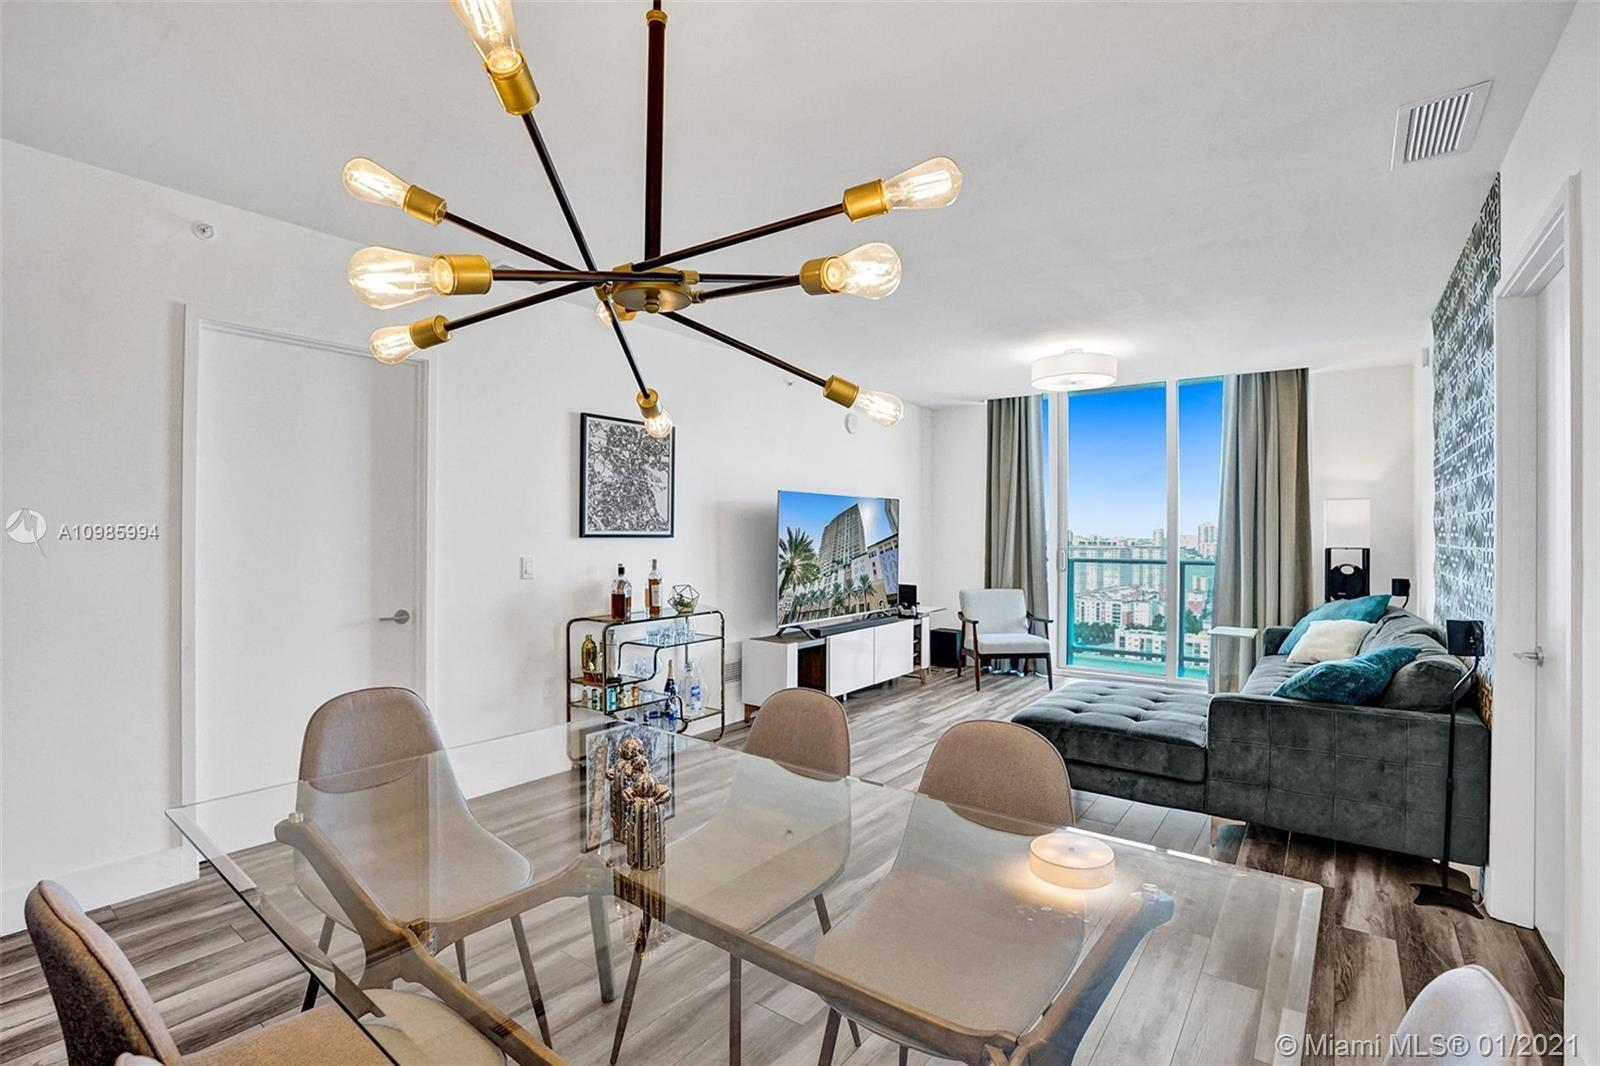 Fully Furnished !!! 1860 sqft 2 Beds / 3 Full Baths + Den. Located in Sunny Isles Beach one of the m